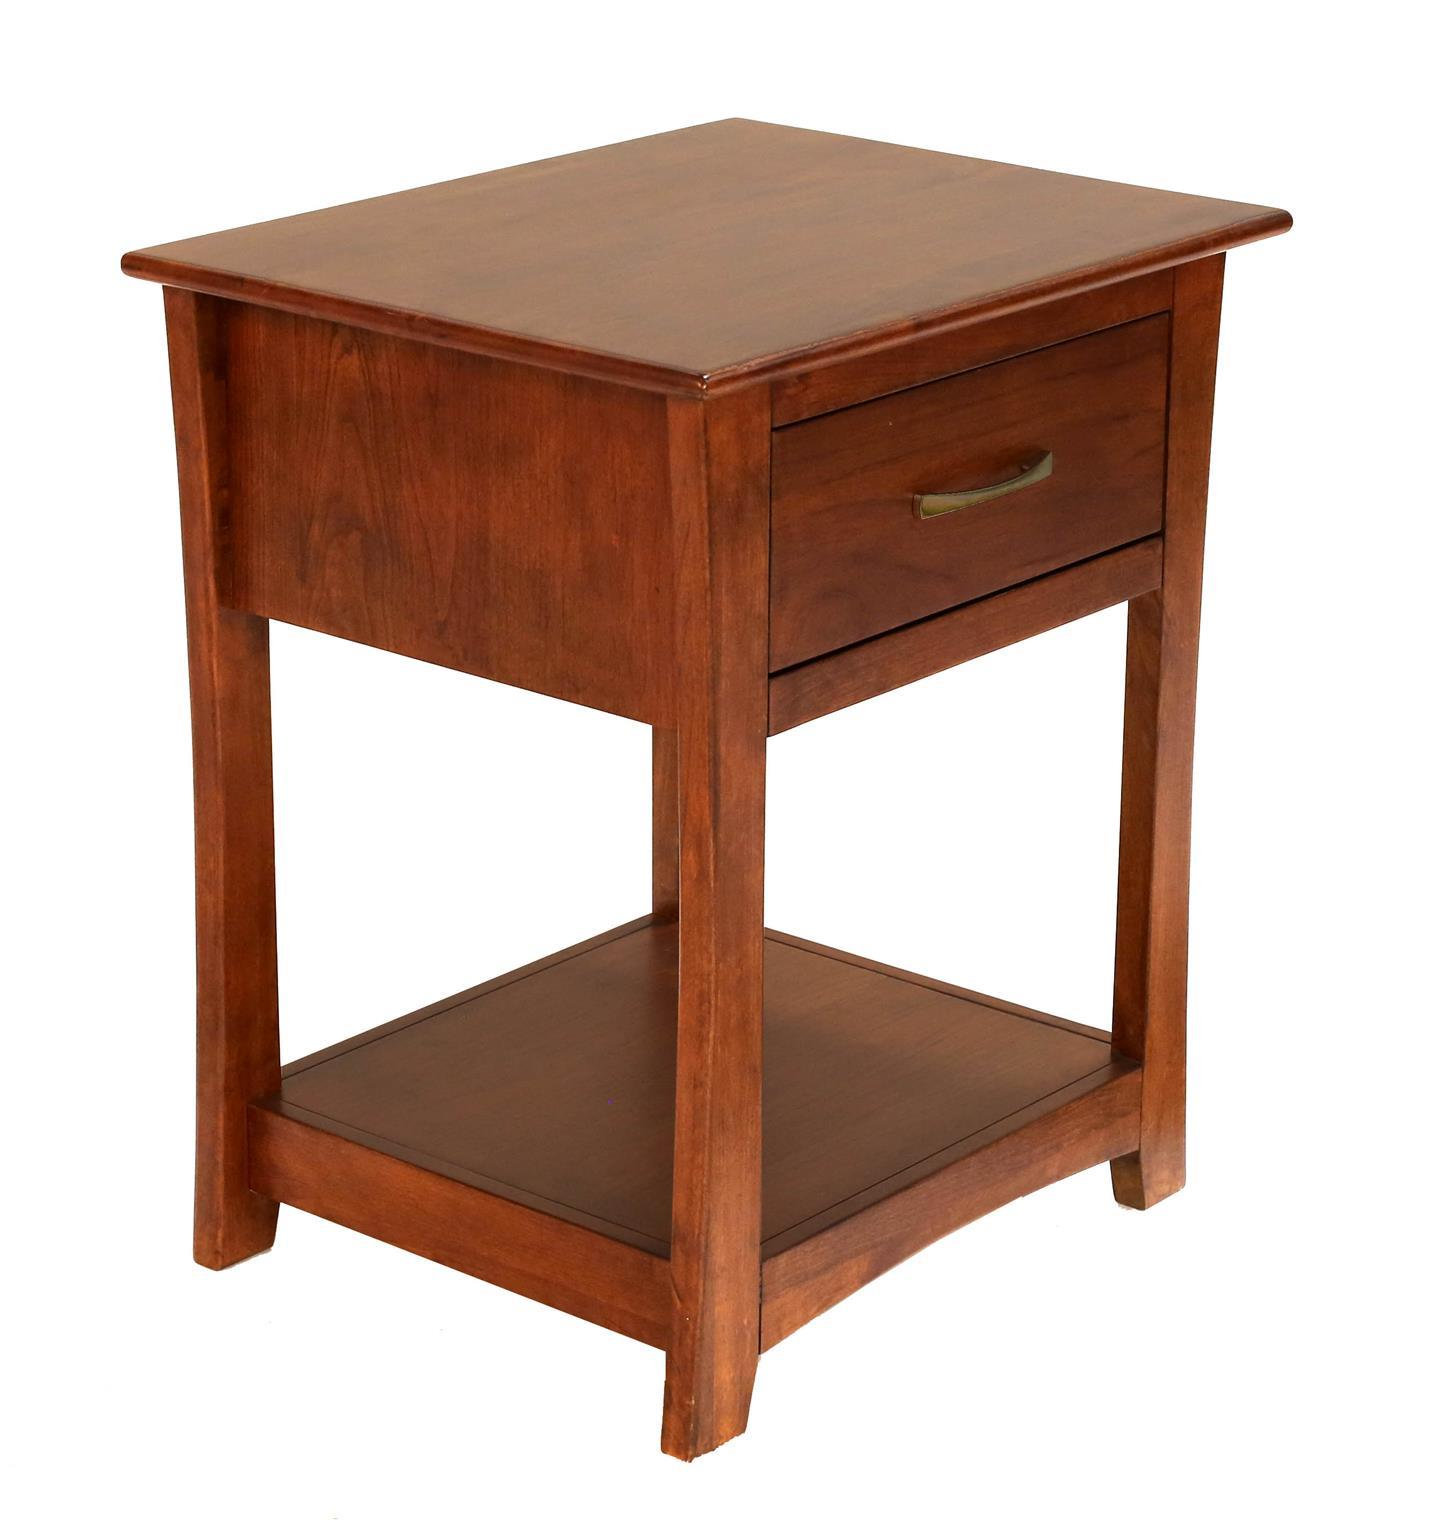 Grant Park Drawer Nightstand by A-A at Walker's Furniture